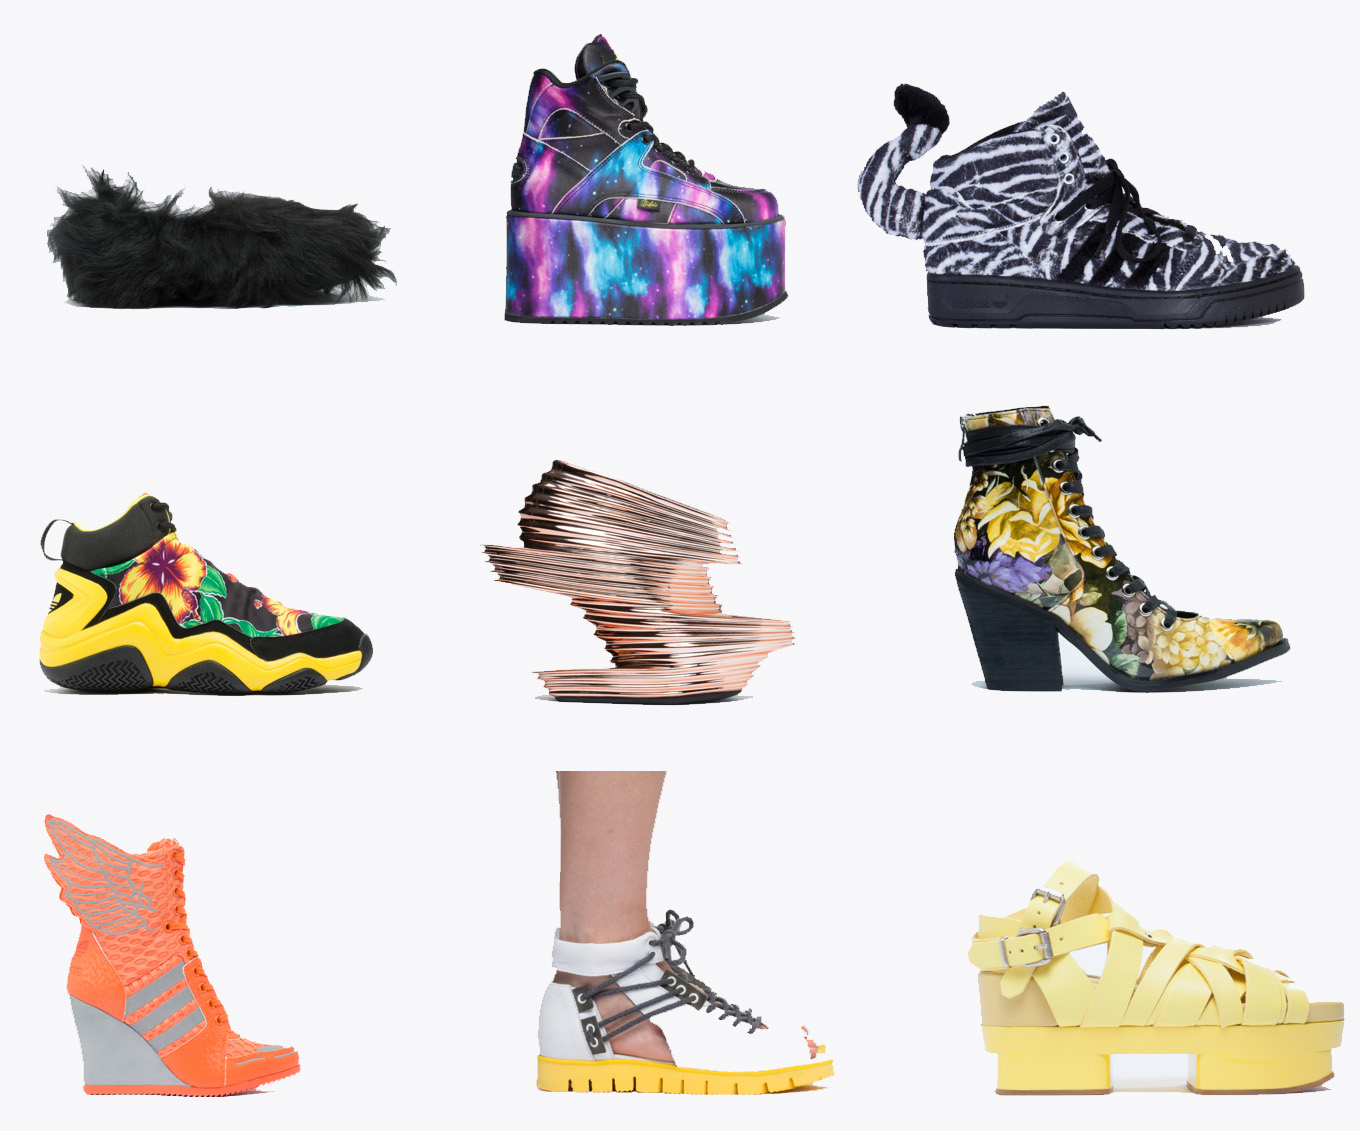 ATHLETIC WINGS WEDGE BY ADIDAS ORIGINALS X JEREMY SCOTT 179.95